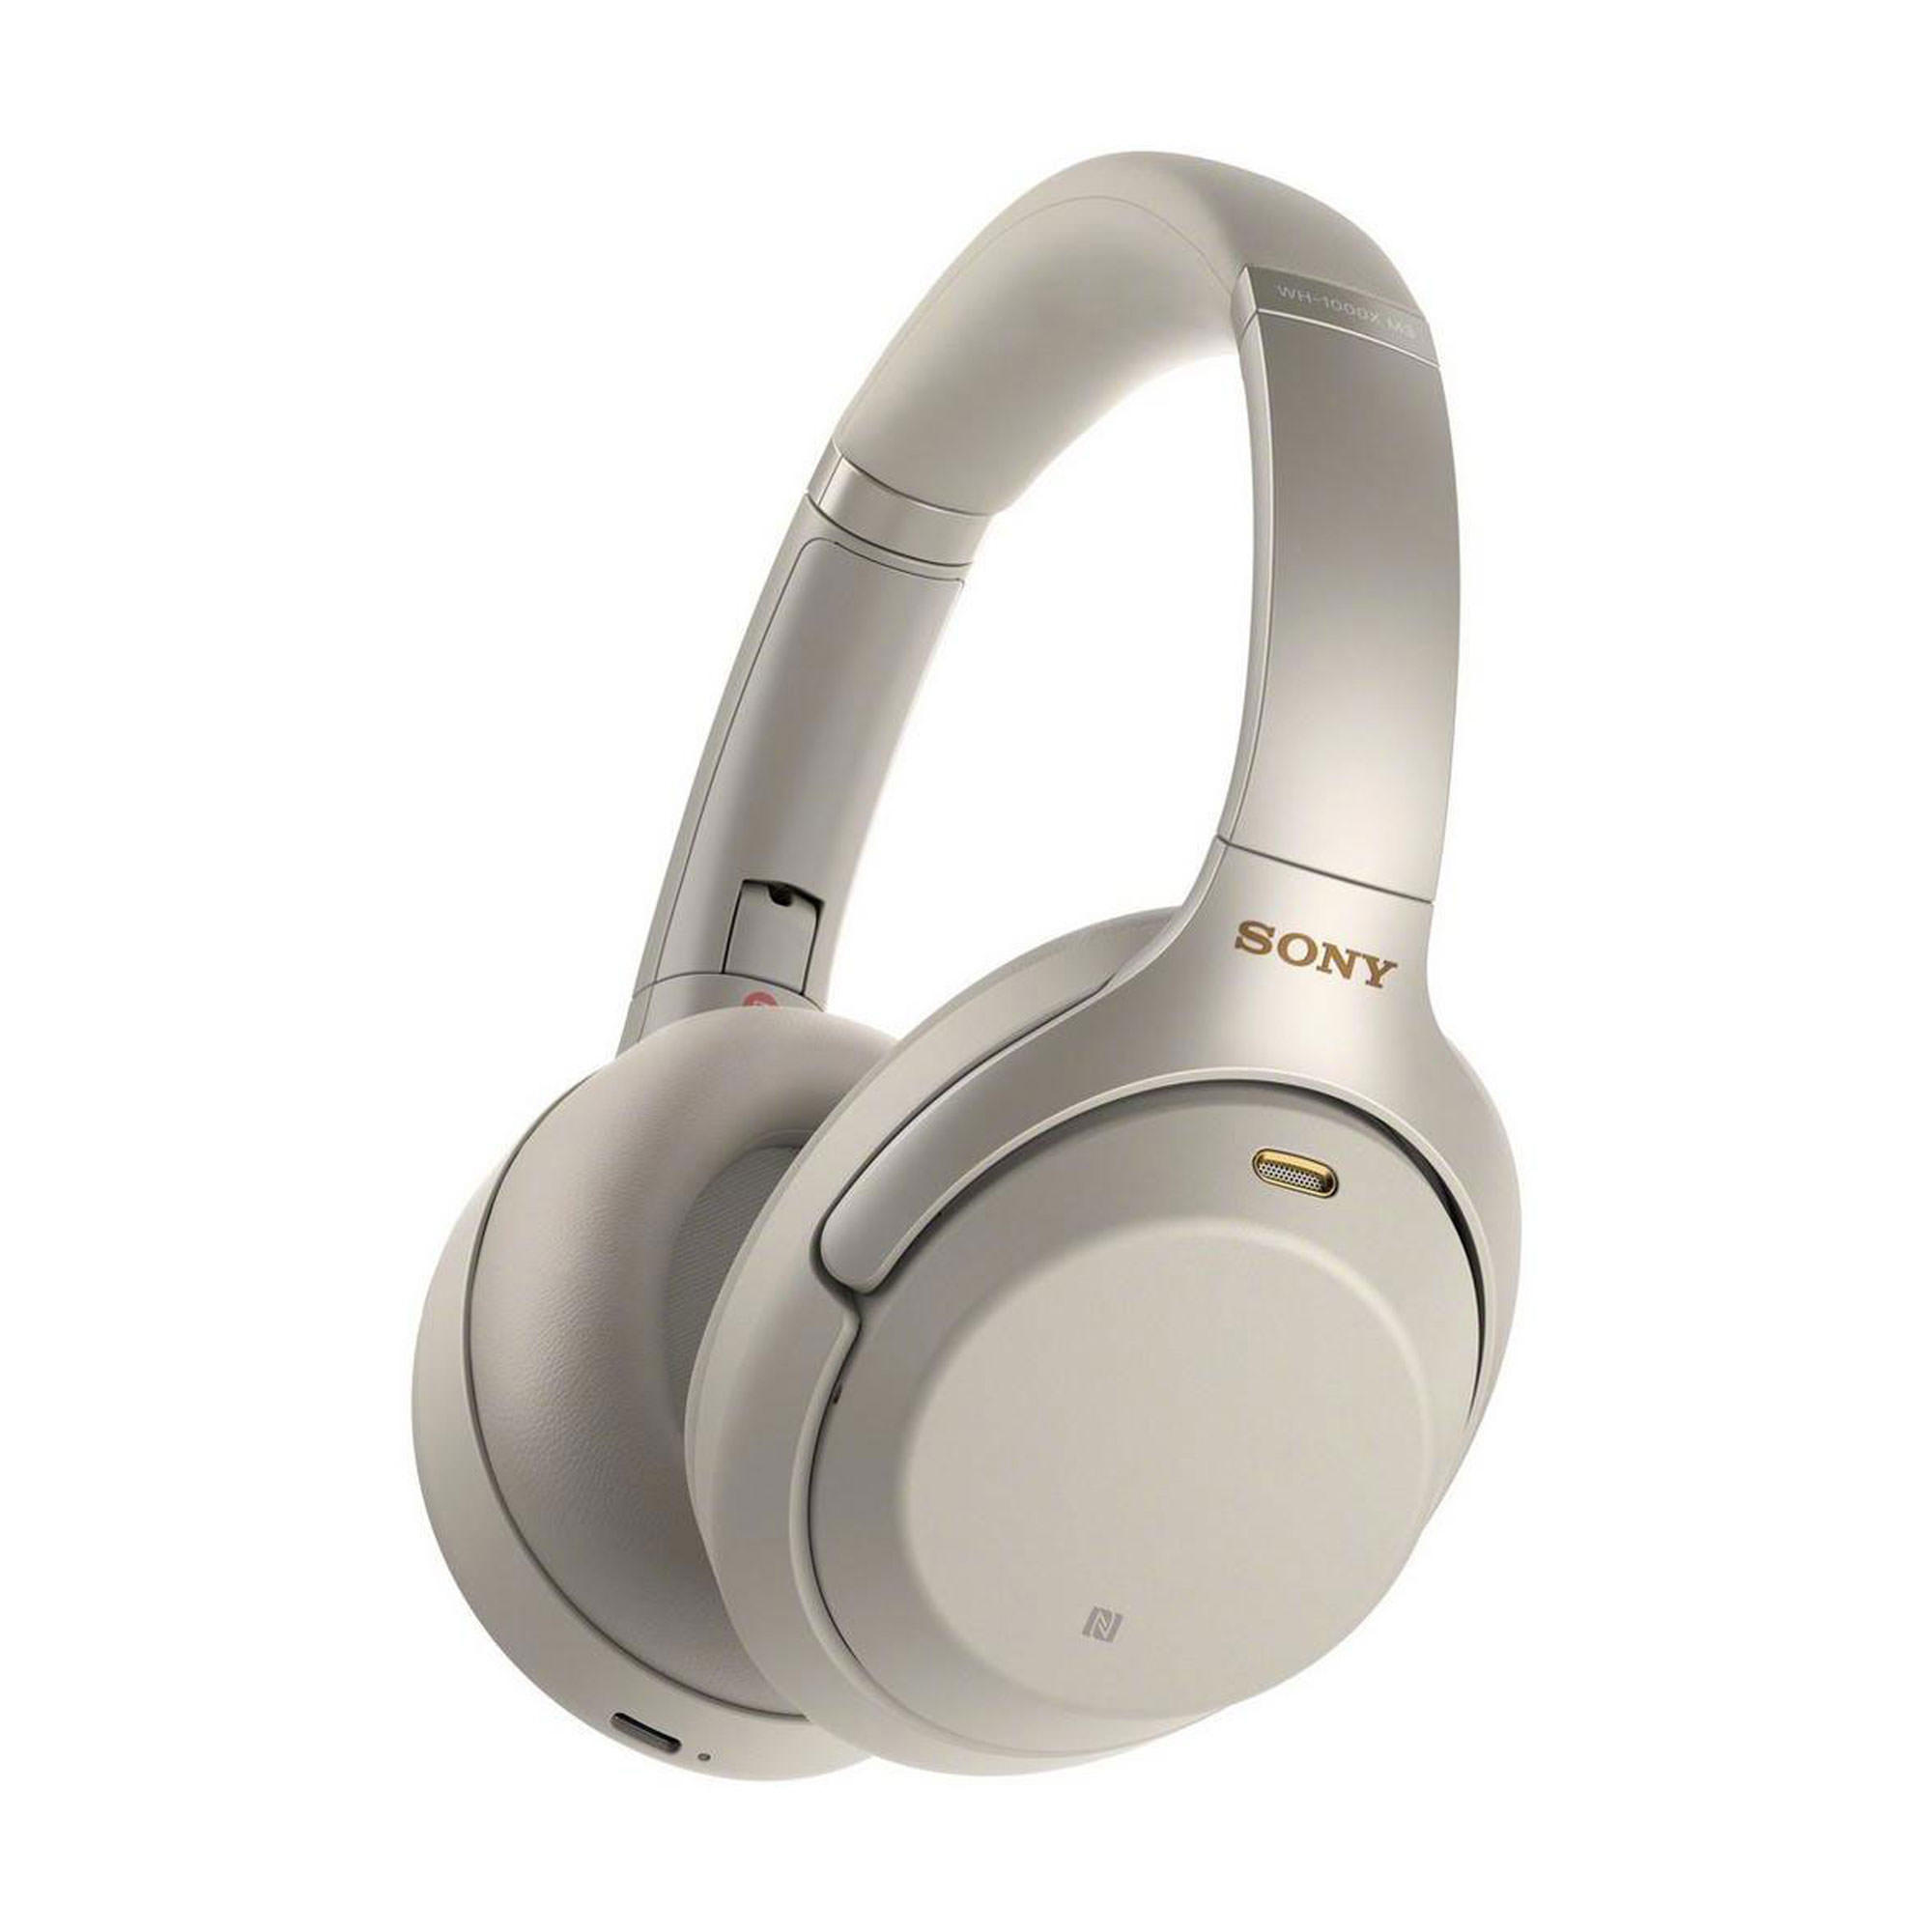 BRISWH1000XM3SCE7: Wireless Noise Cancelling Headphones